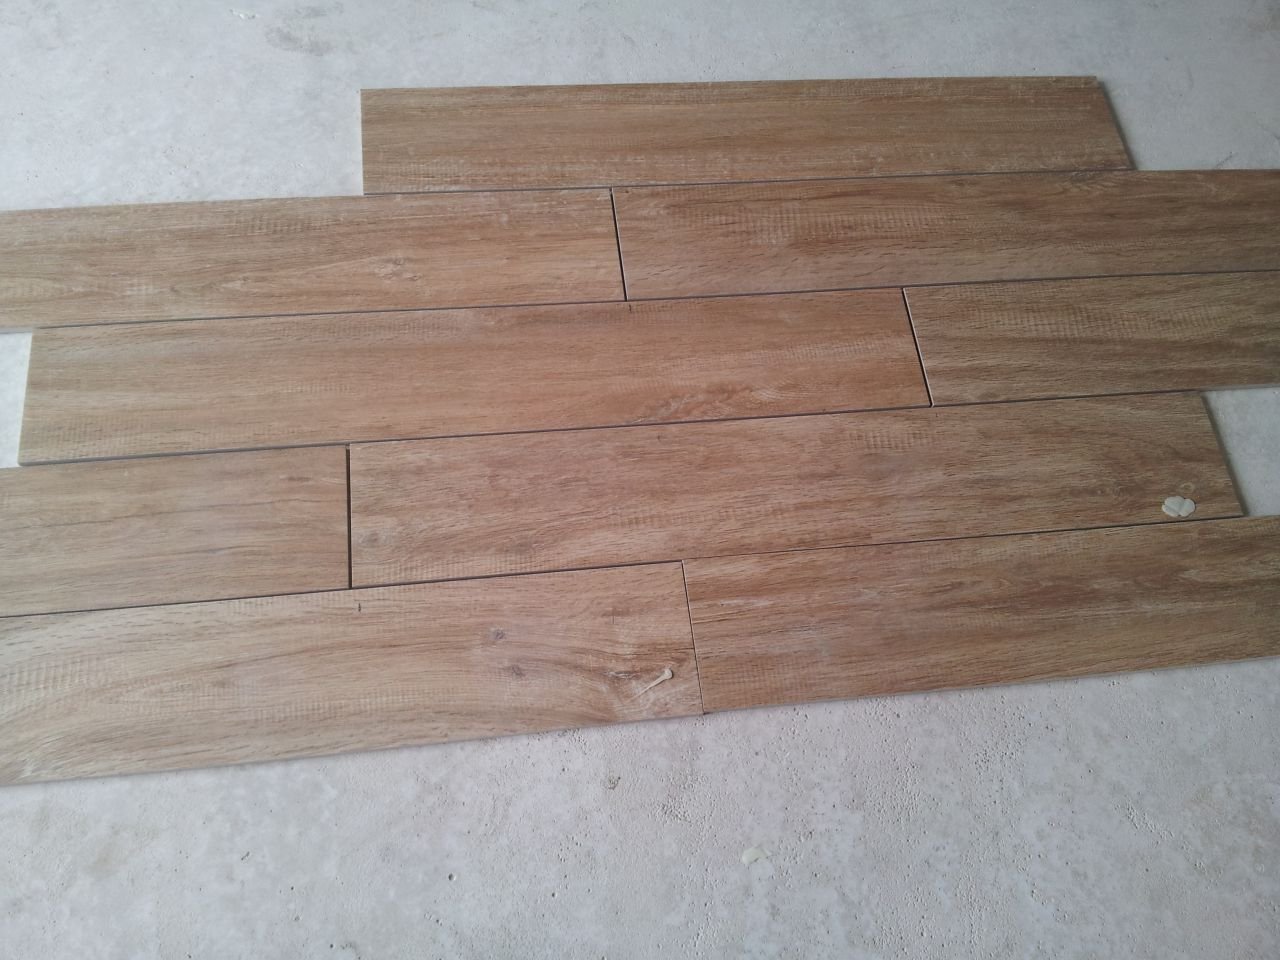 Sens et technique de pose pr carrelage imitation parquet for Pose carrelage imitation parquet